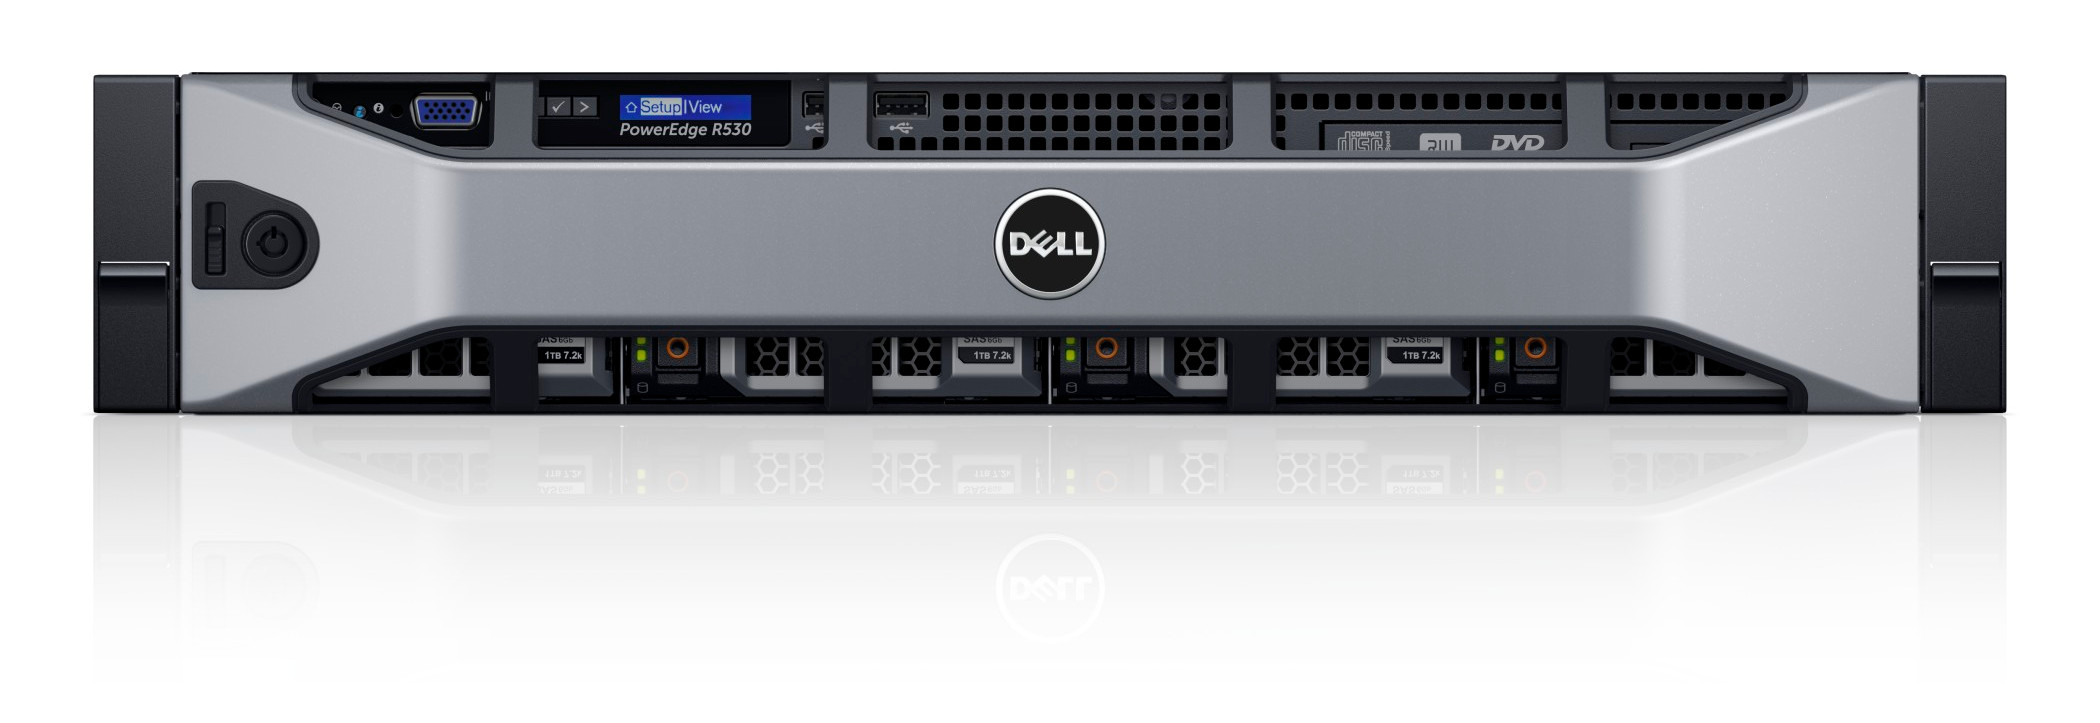 Dell PowerEdge R530 E5-2620v4